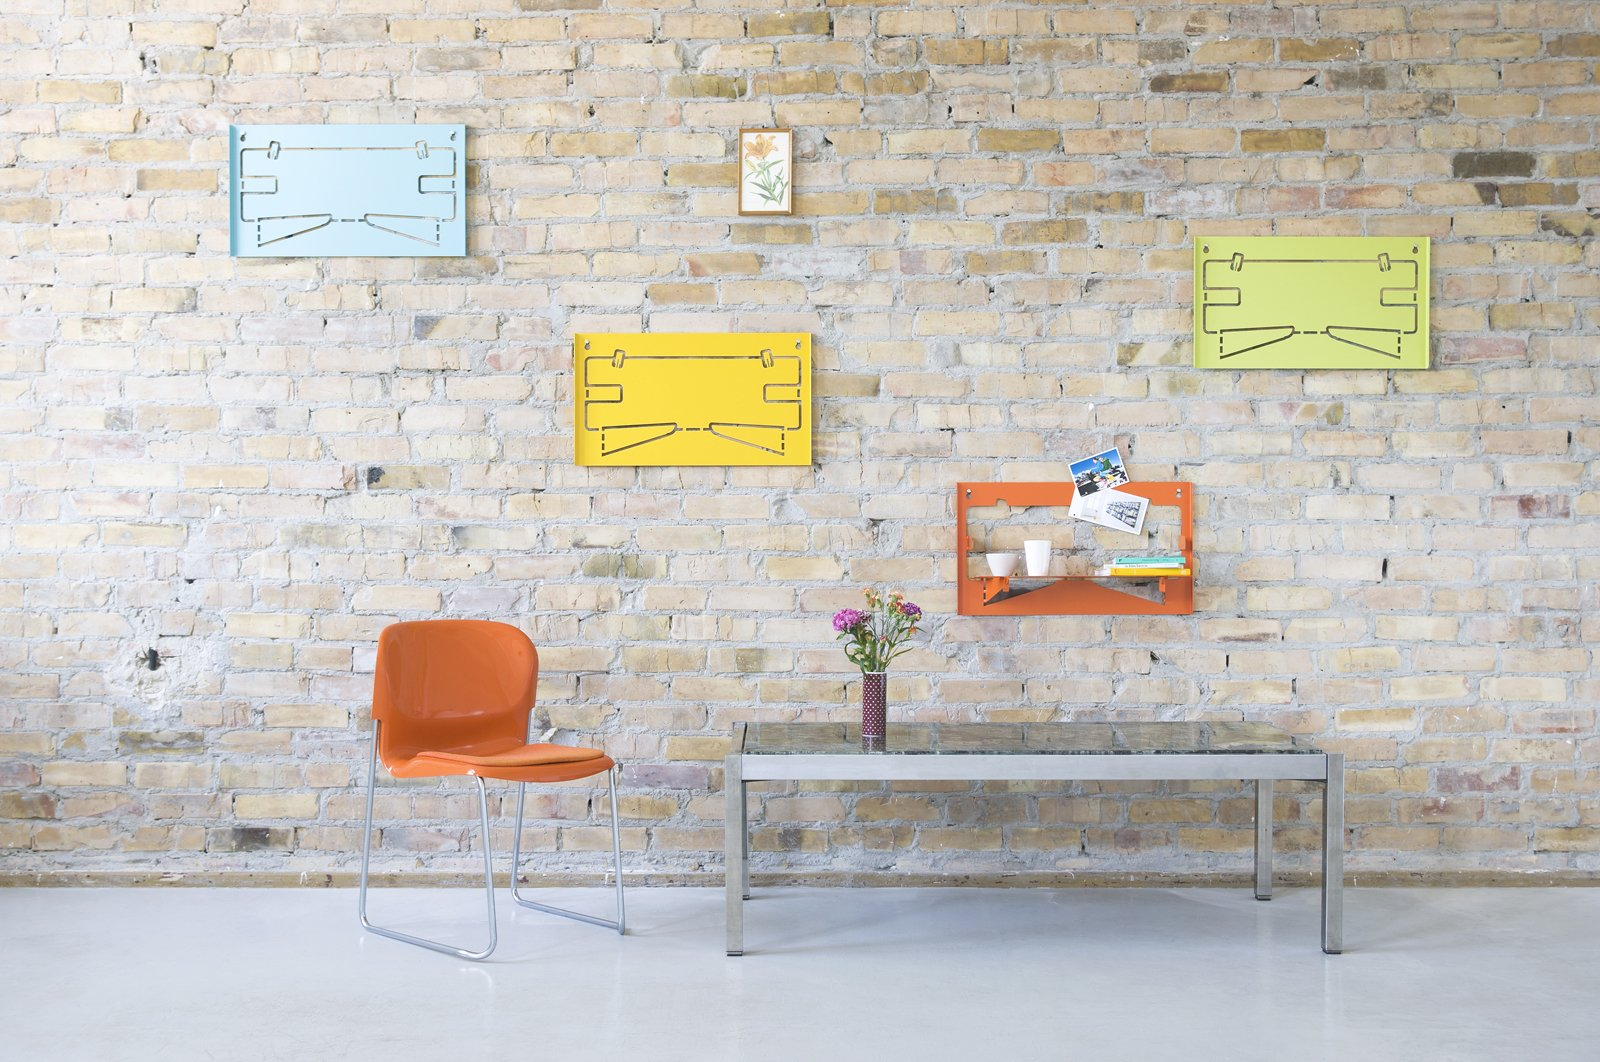 Piegato One shelves by Matthias Ries for MRDO products  Photo 5 of 5 in Piegato Shelves